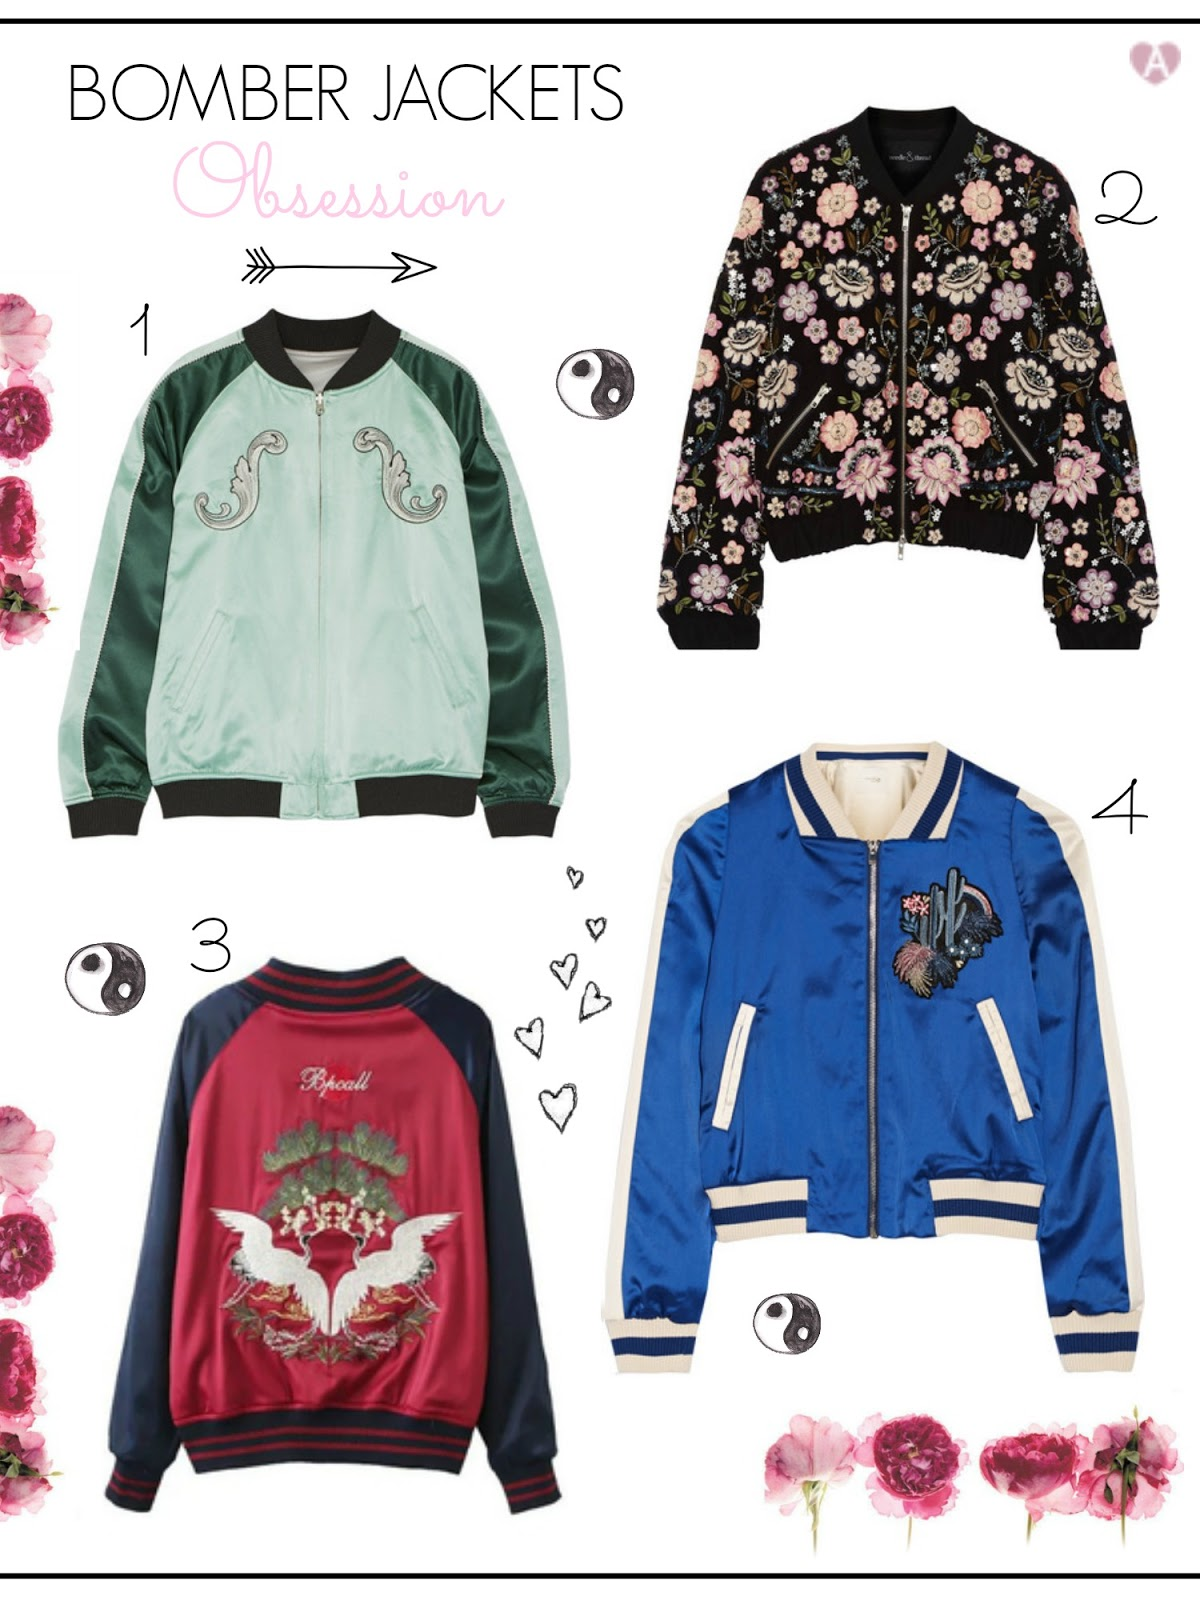 Top picks: Embroidery bomber jackets